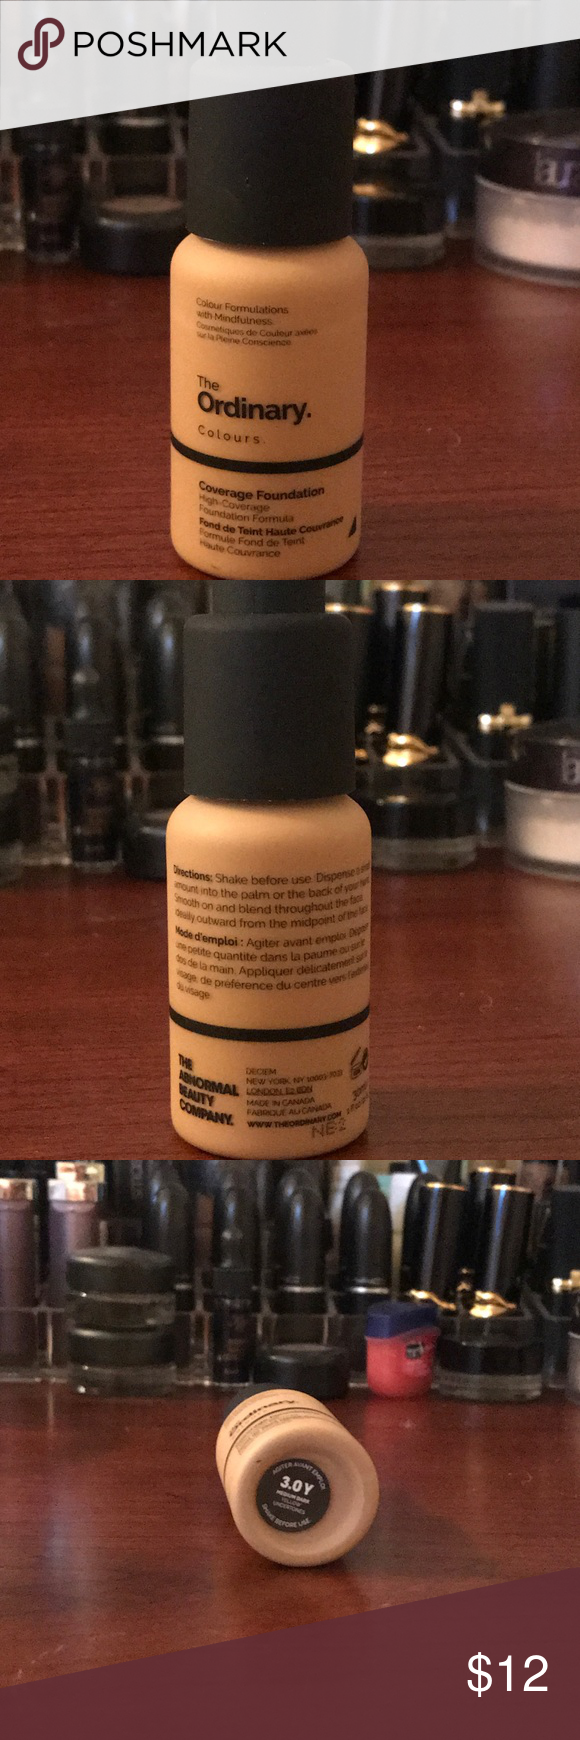 The Ordinary Coverage Foundation in 3.0R and 3.0Y High